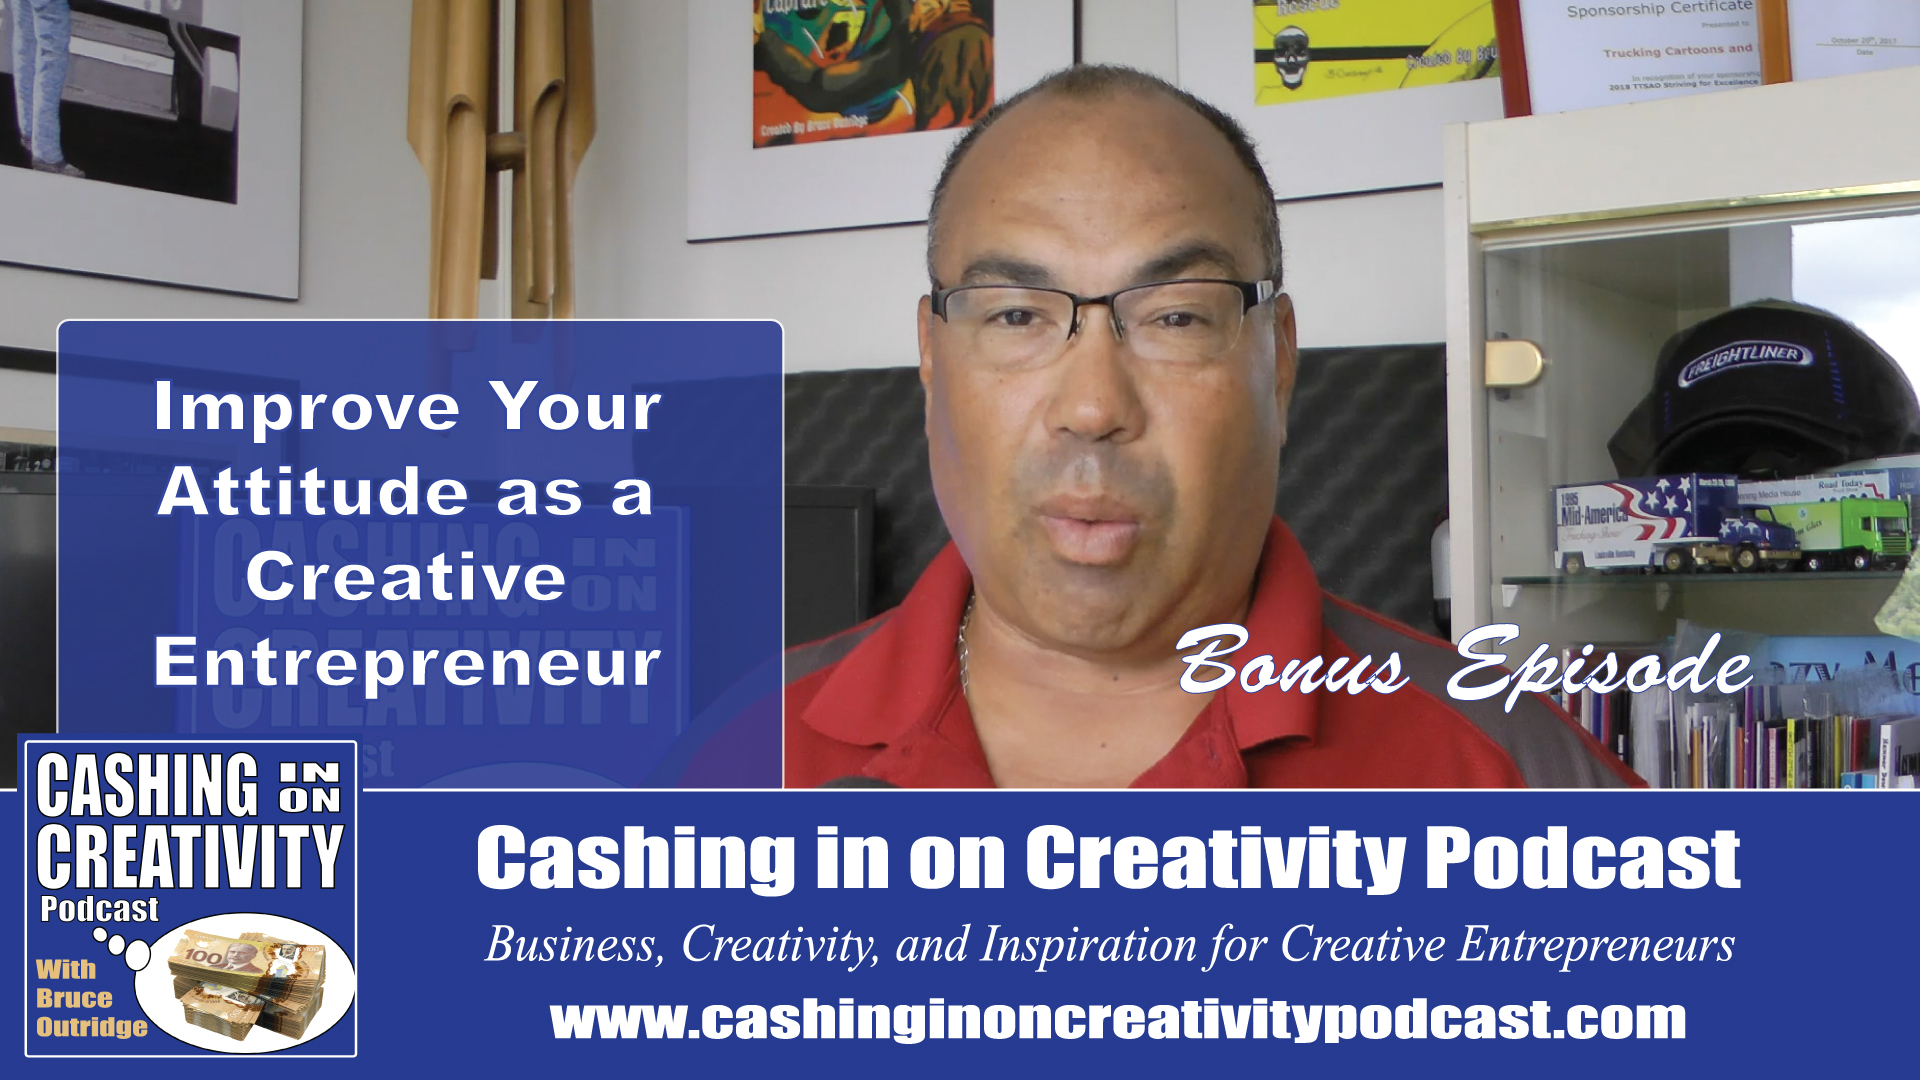 Keep Improving Yourself: Cashing In On Creativity Podcast For Creative